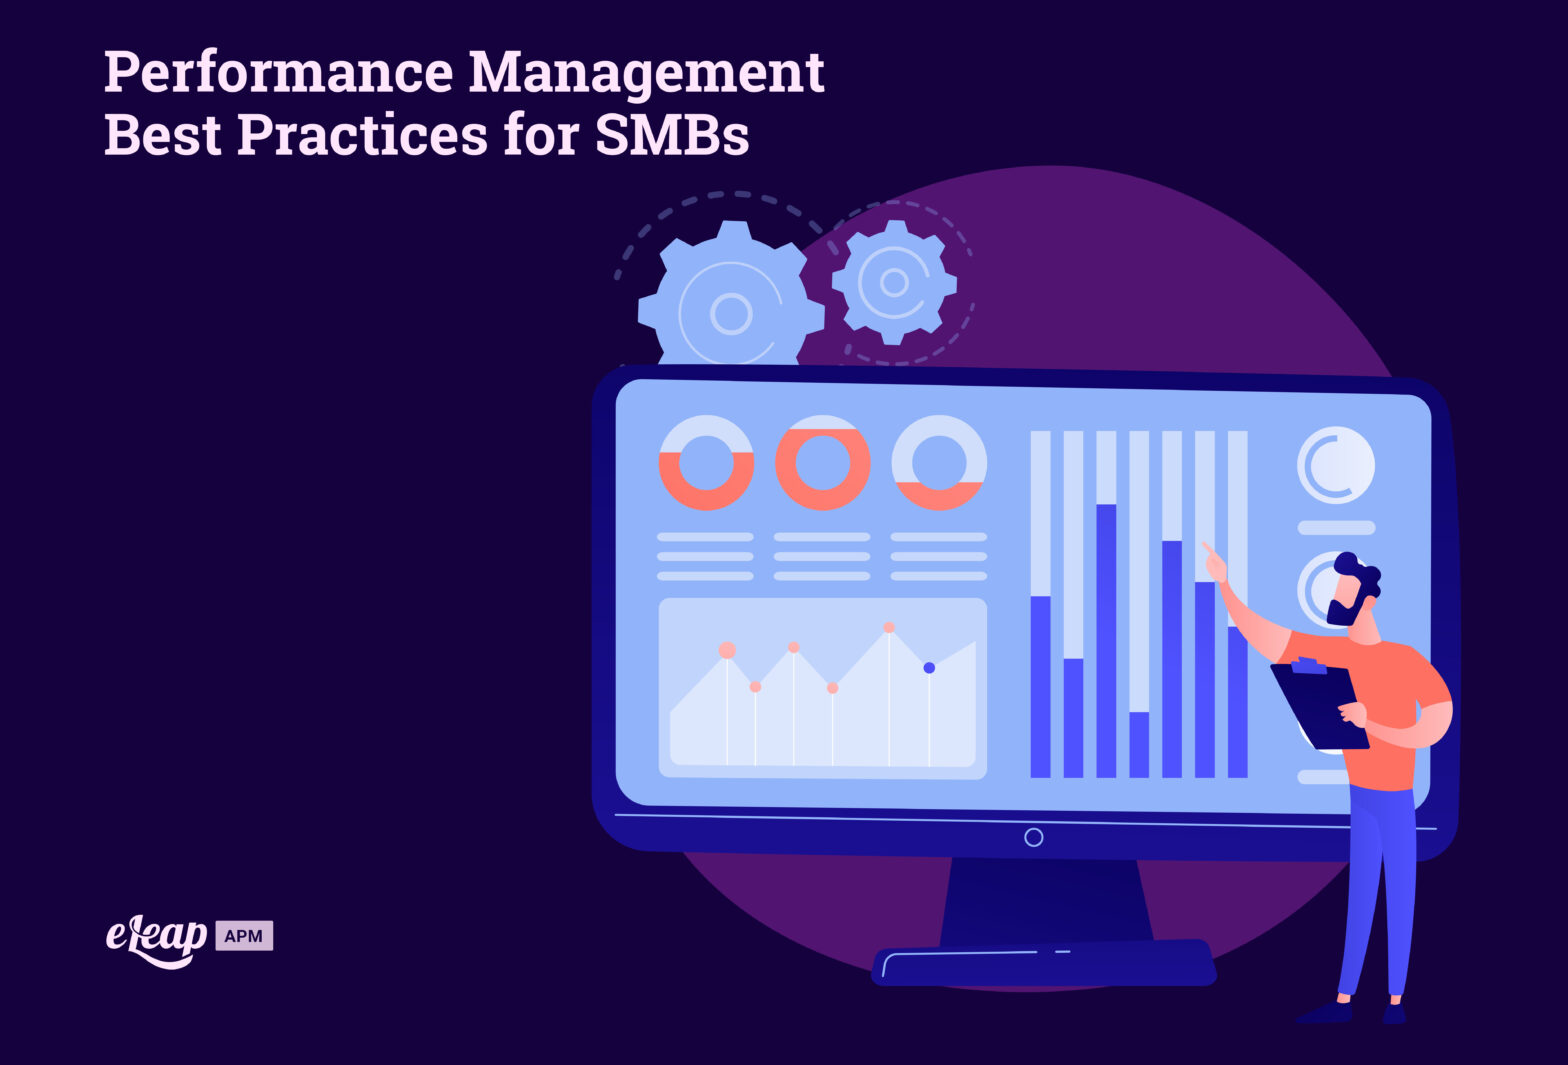 Performance Management Best Practices for SMBs